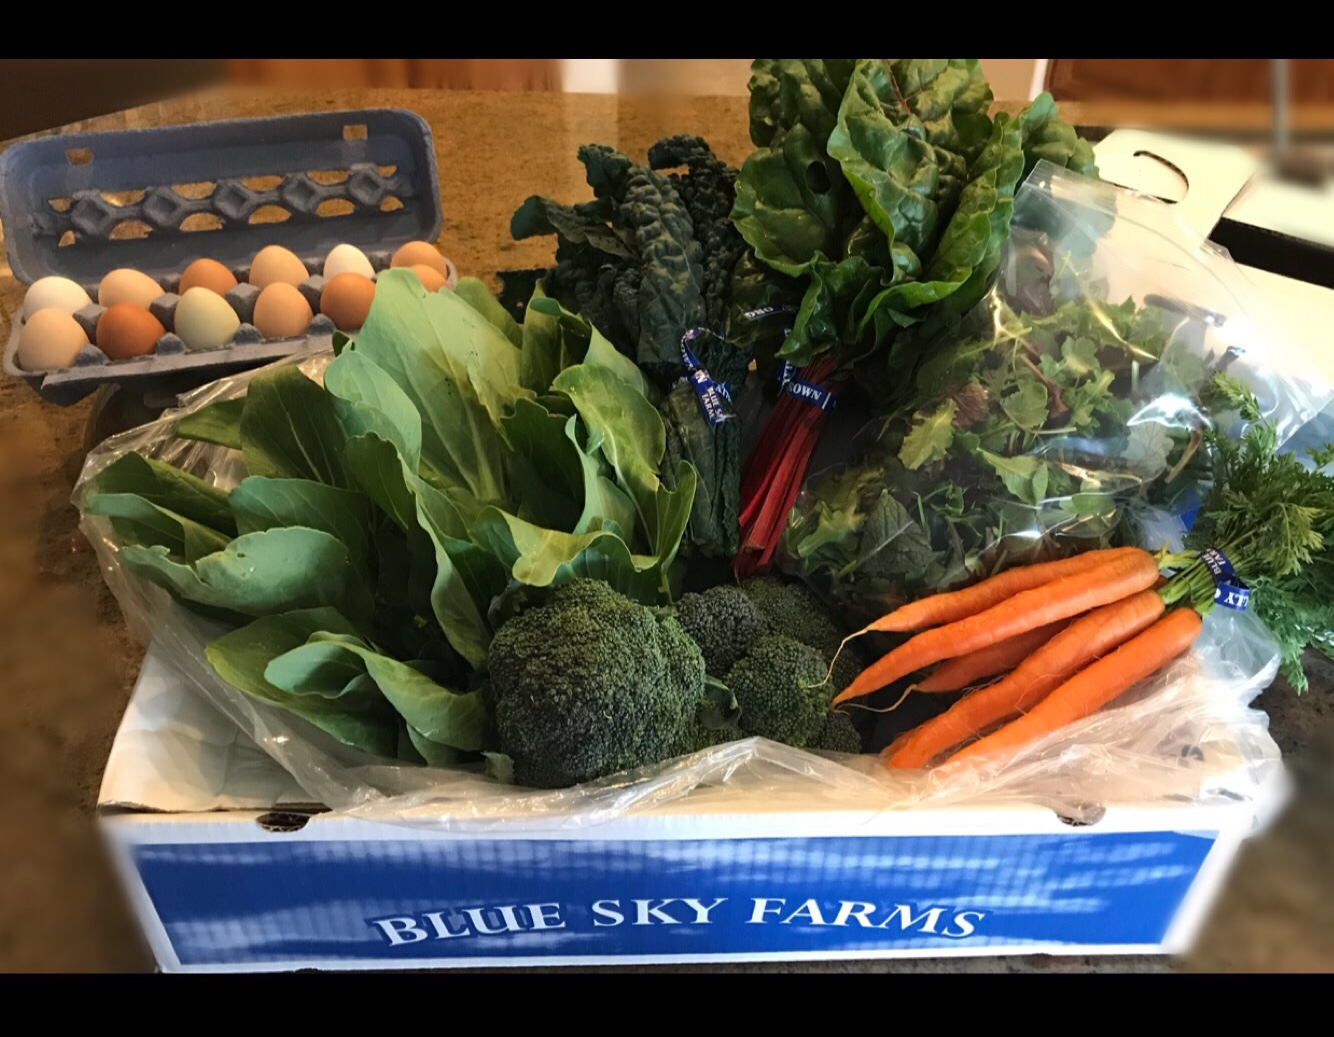 http://blueskyorganicfarms.com/wp-content/uploads/2018/09/CSA-Box_At-Home.jpg